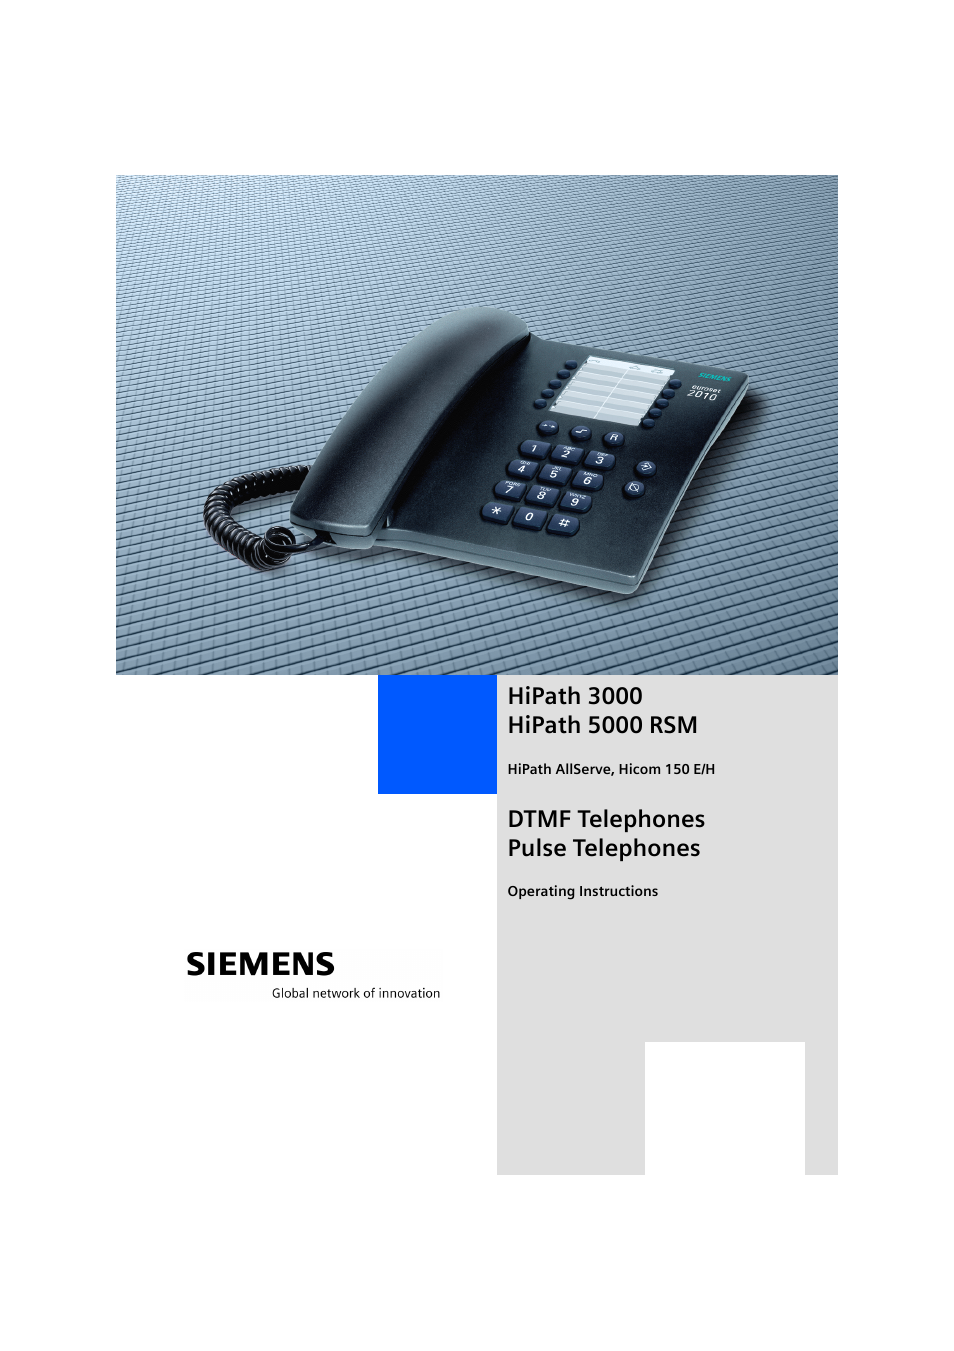 siemens hipath 5000 rsm user manual 62 pages rh manualsdir com manual pabx siemens hipath 3500 Siemens HiPath Pro Center